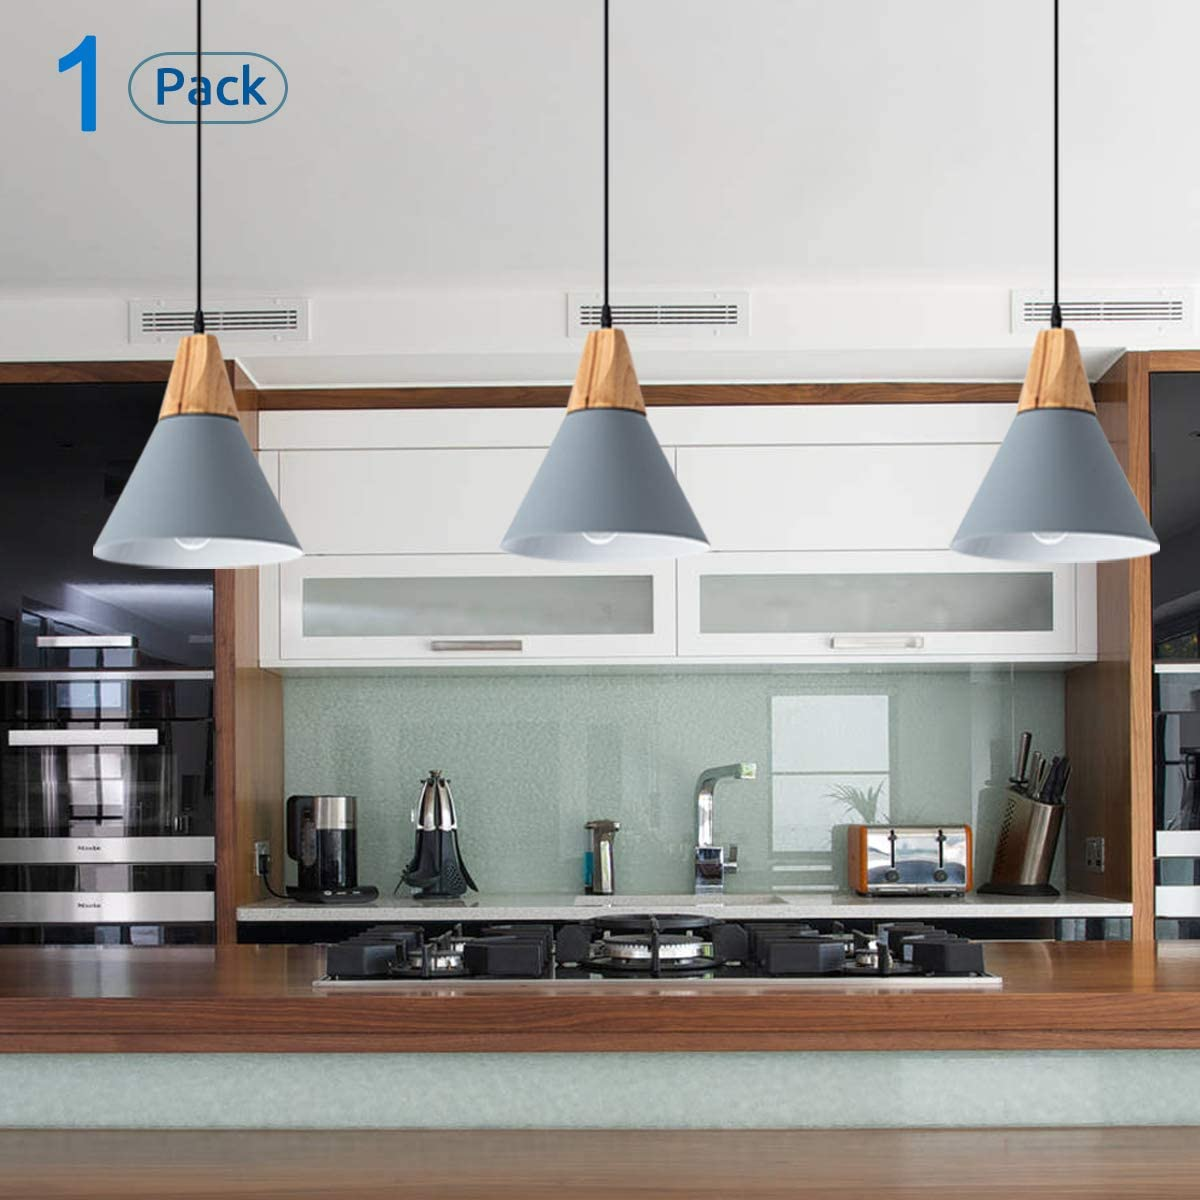 Contemporary Pendant Light Industrial Hanging Metal Small Light Fixtures Wood Pendant Lamp for Kitchen Island, Dining Room, Barn, Bar, Hallway Gray 1 Pack